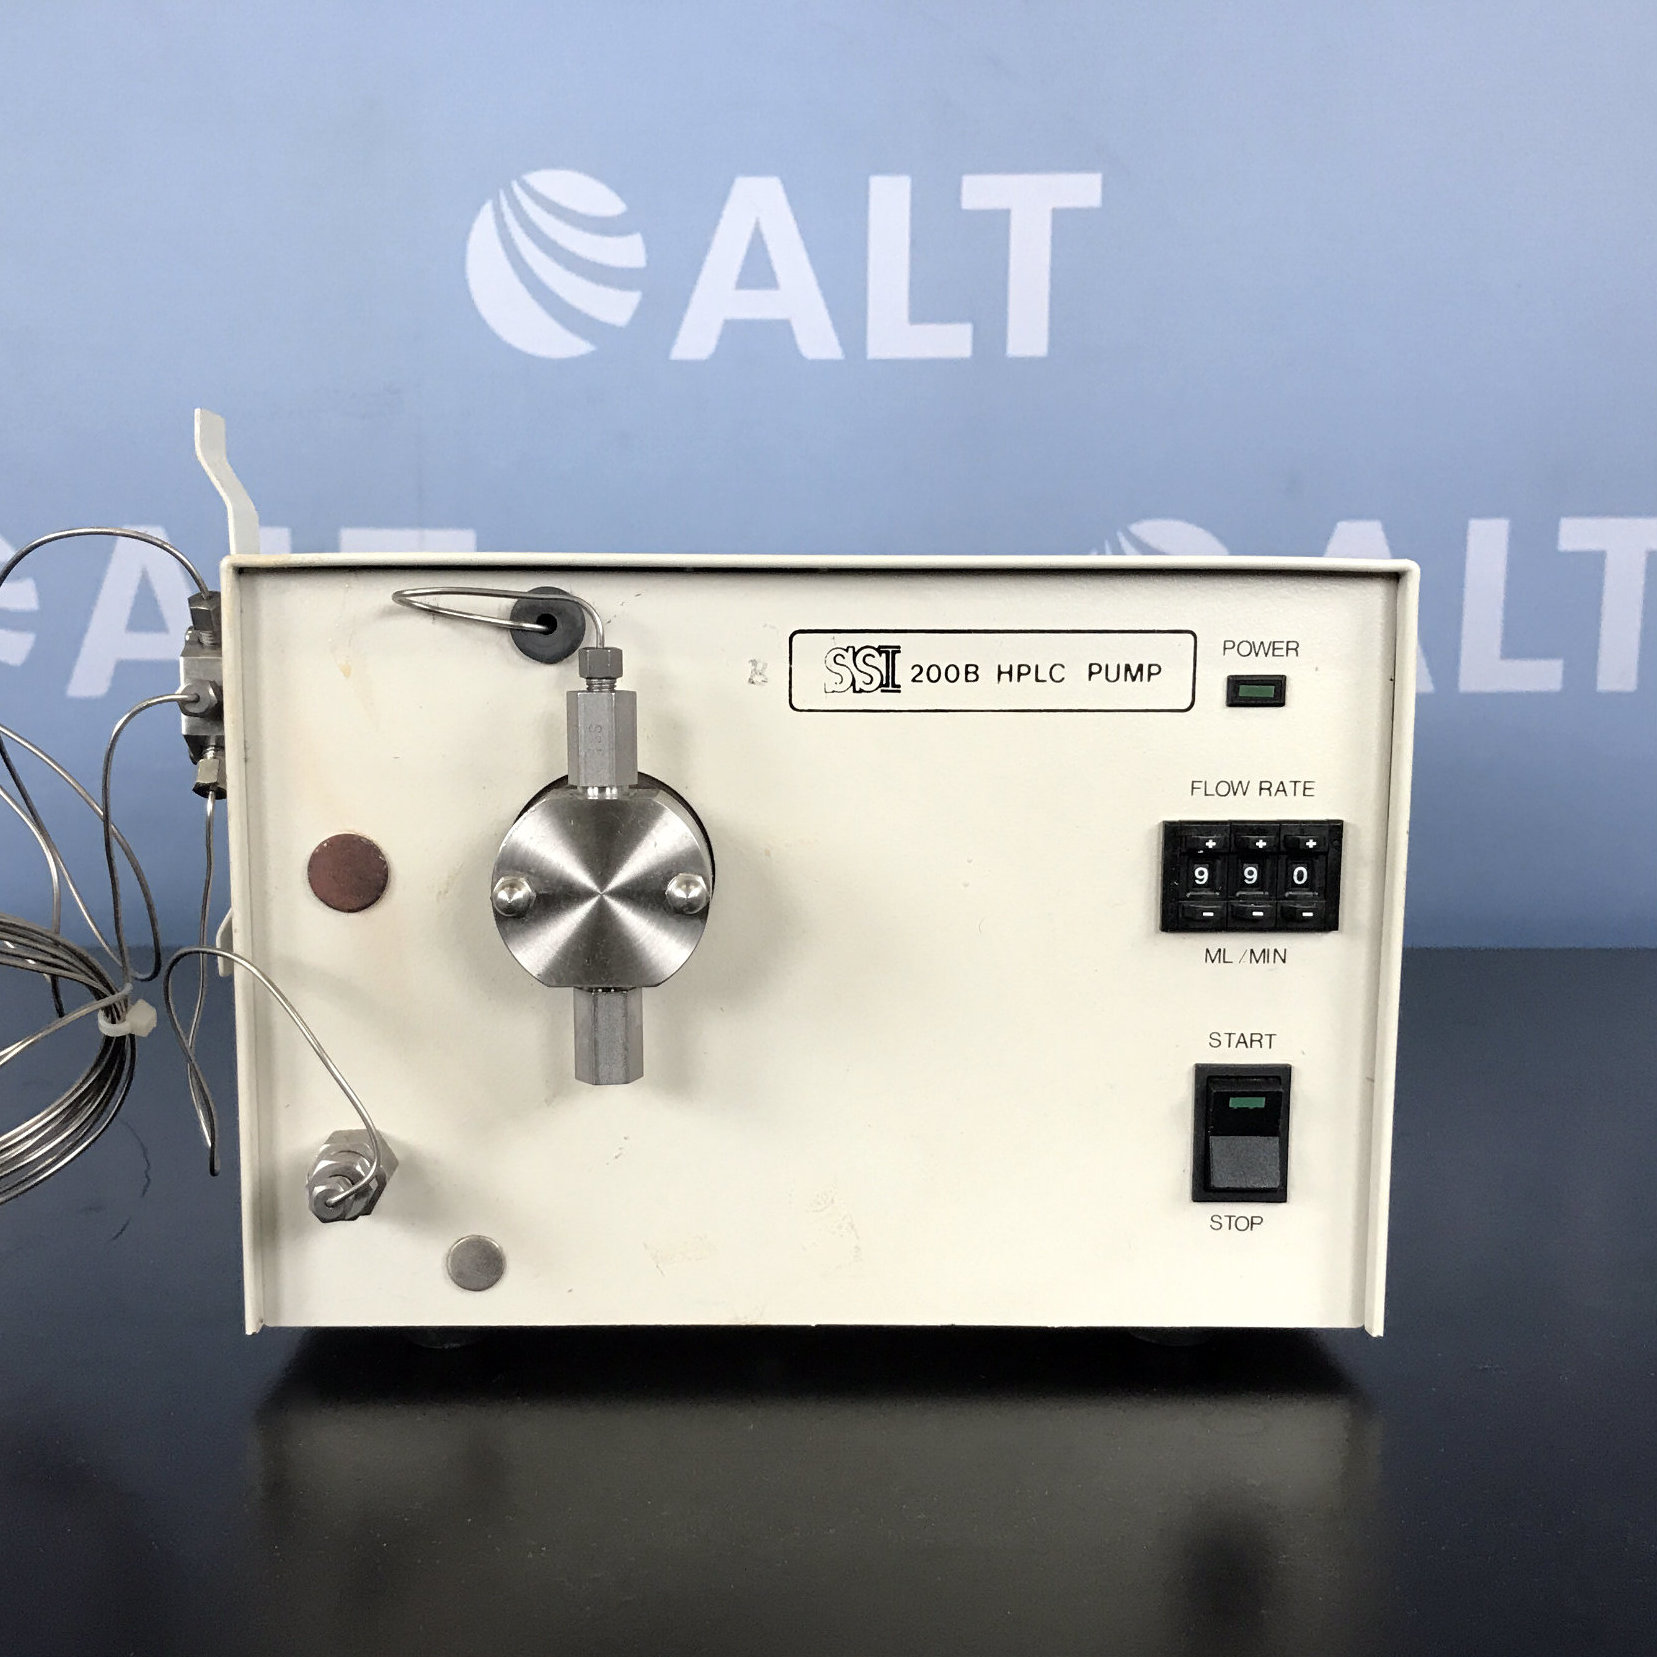 Scientific System Inc 200B HPLC Pump Image